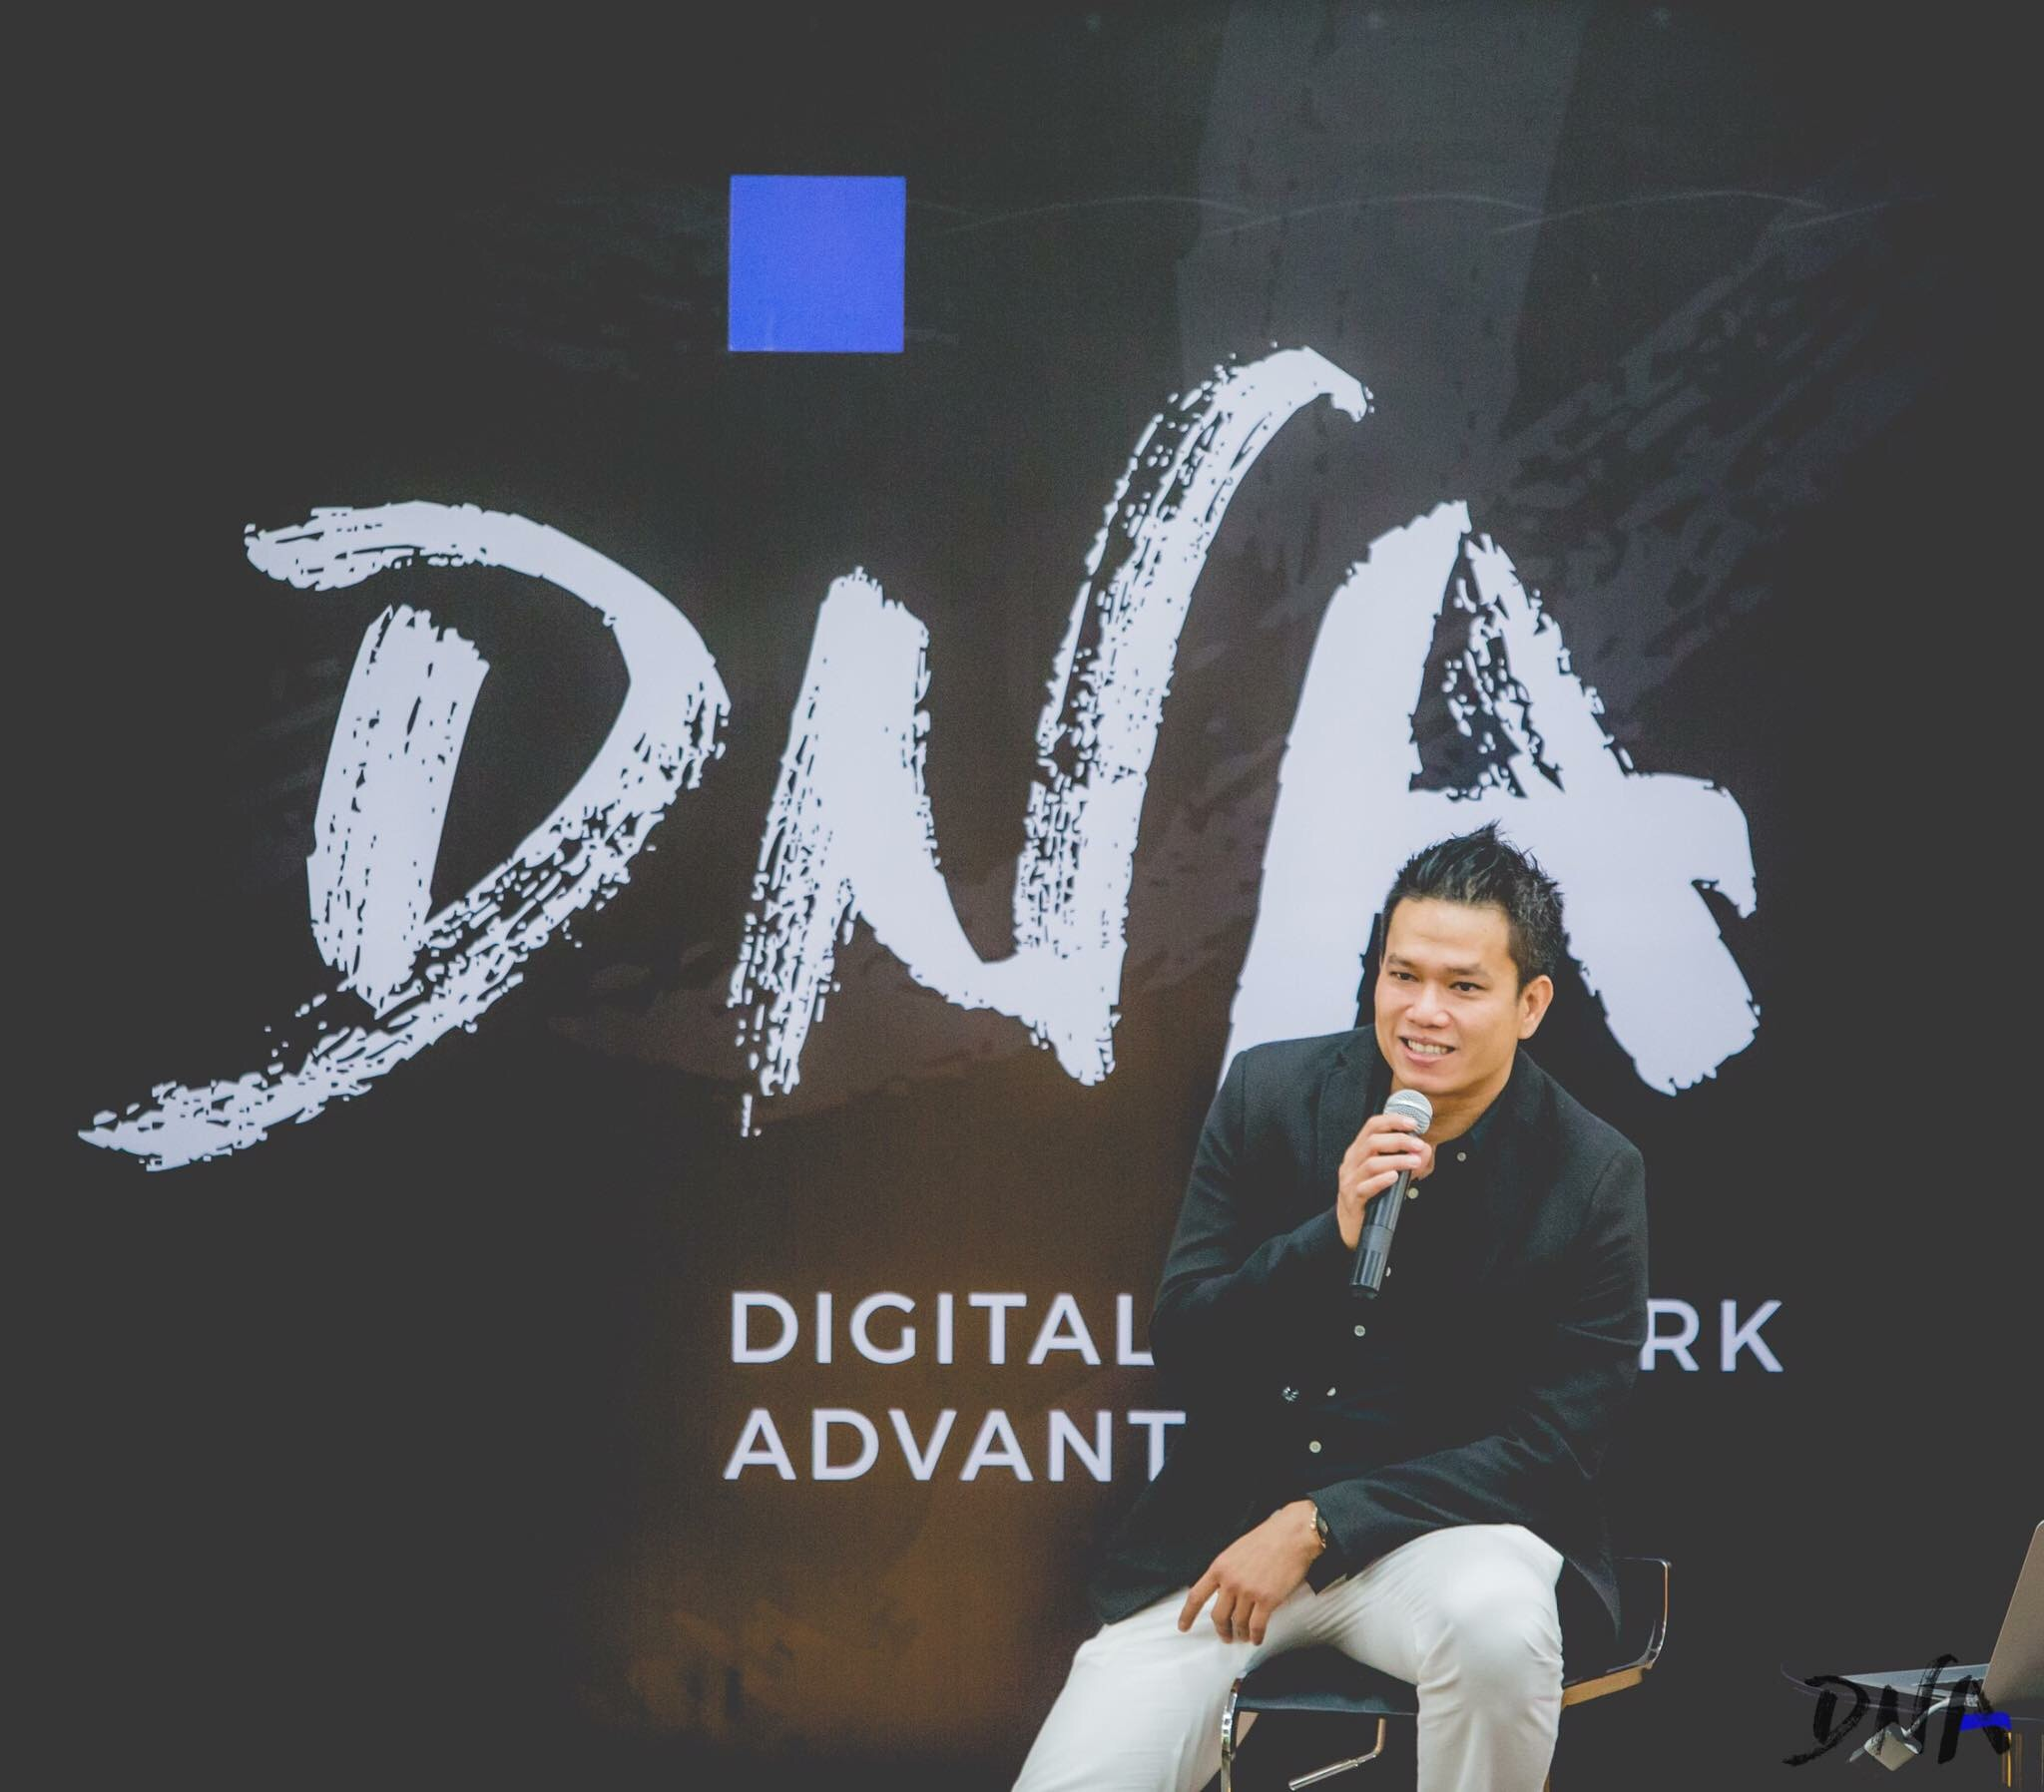 The Power of Photography by Tom Potisit :: ทอม ธีระฉัตร โพธิสิทธิ หลักสูตร DNA :: Digital Network Advantage #DNAbySPU #itsyouYOU